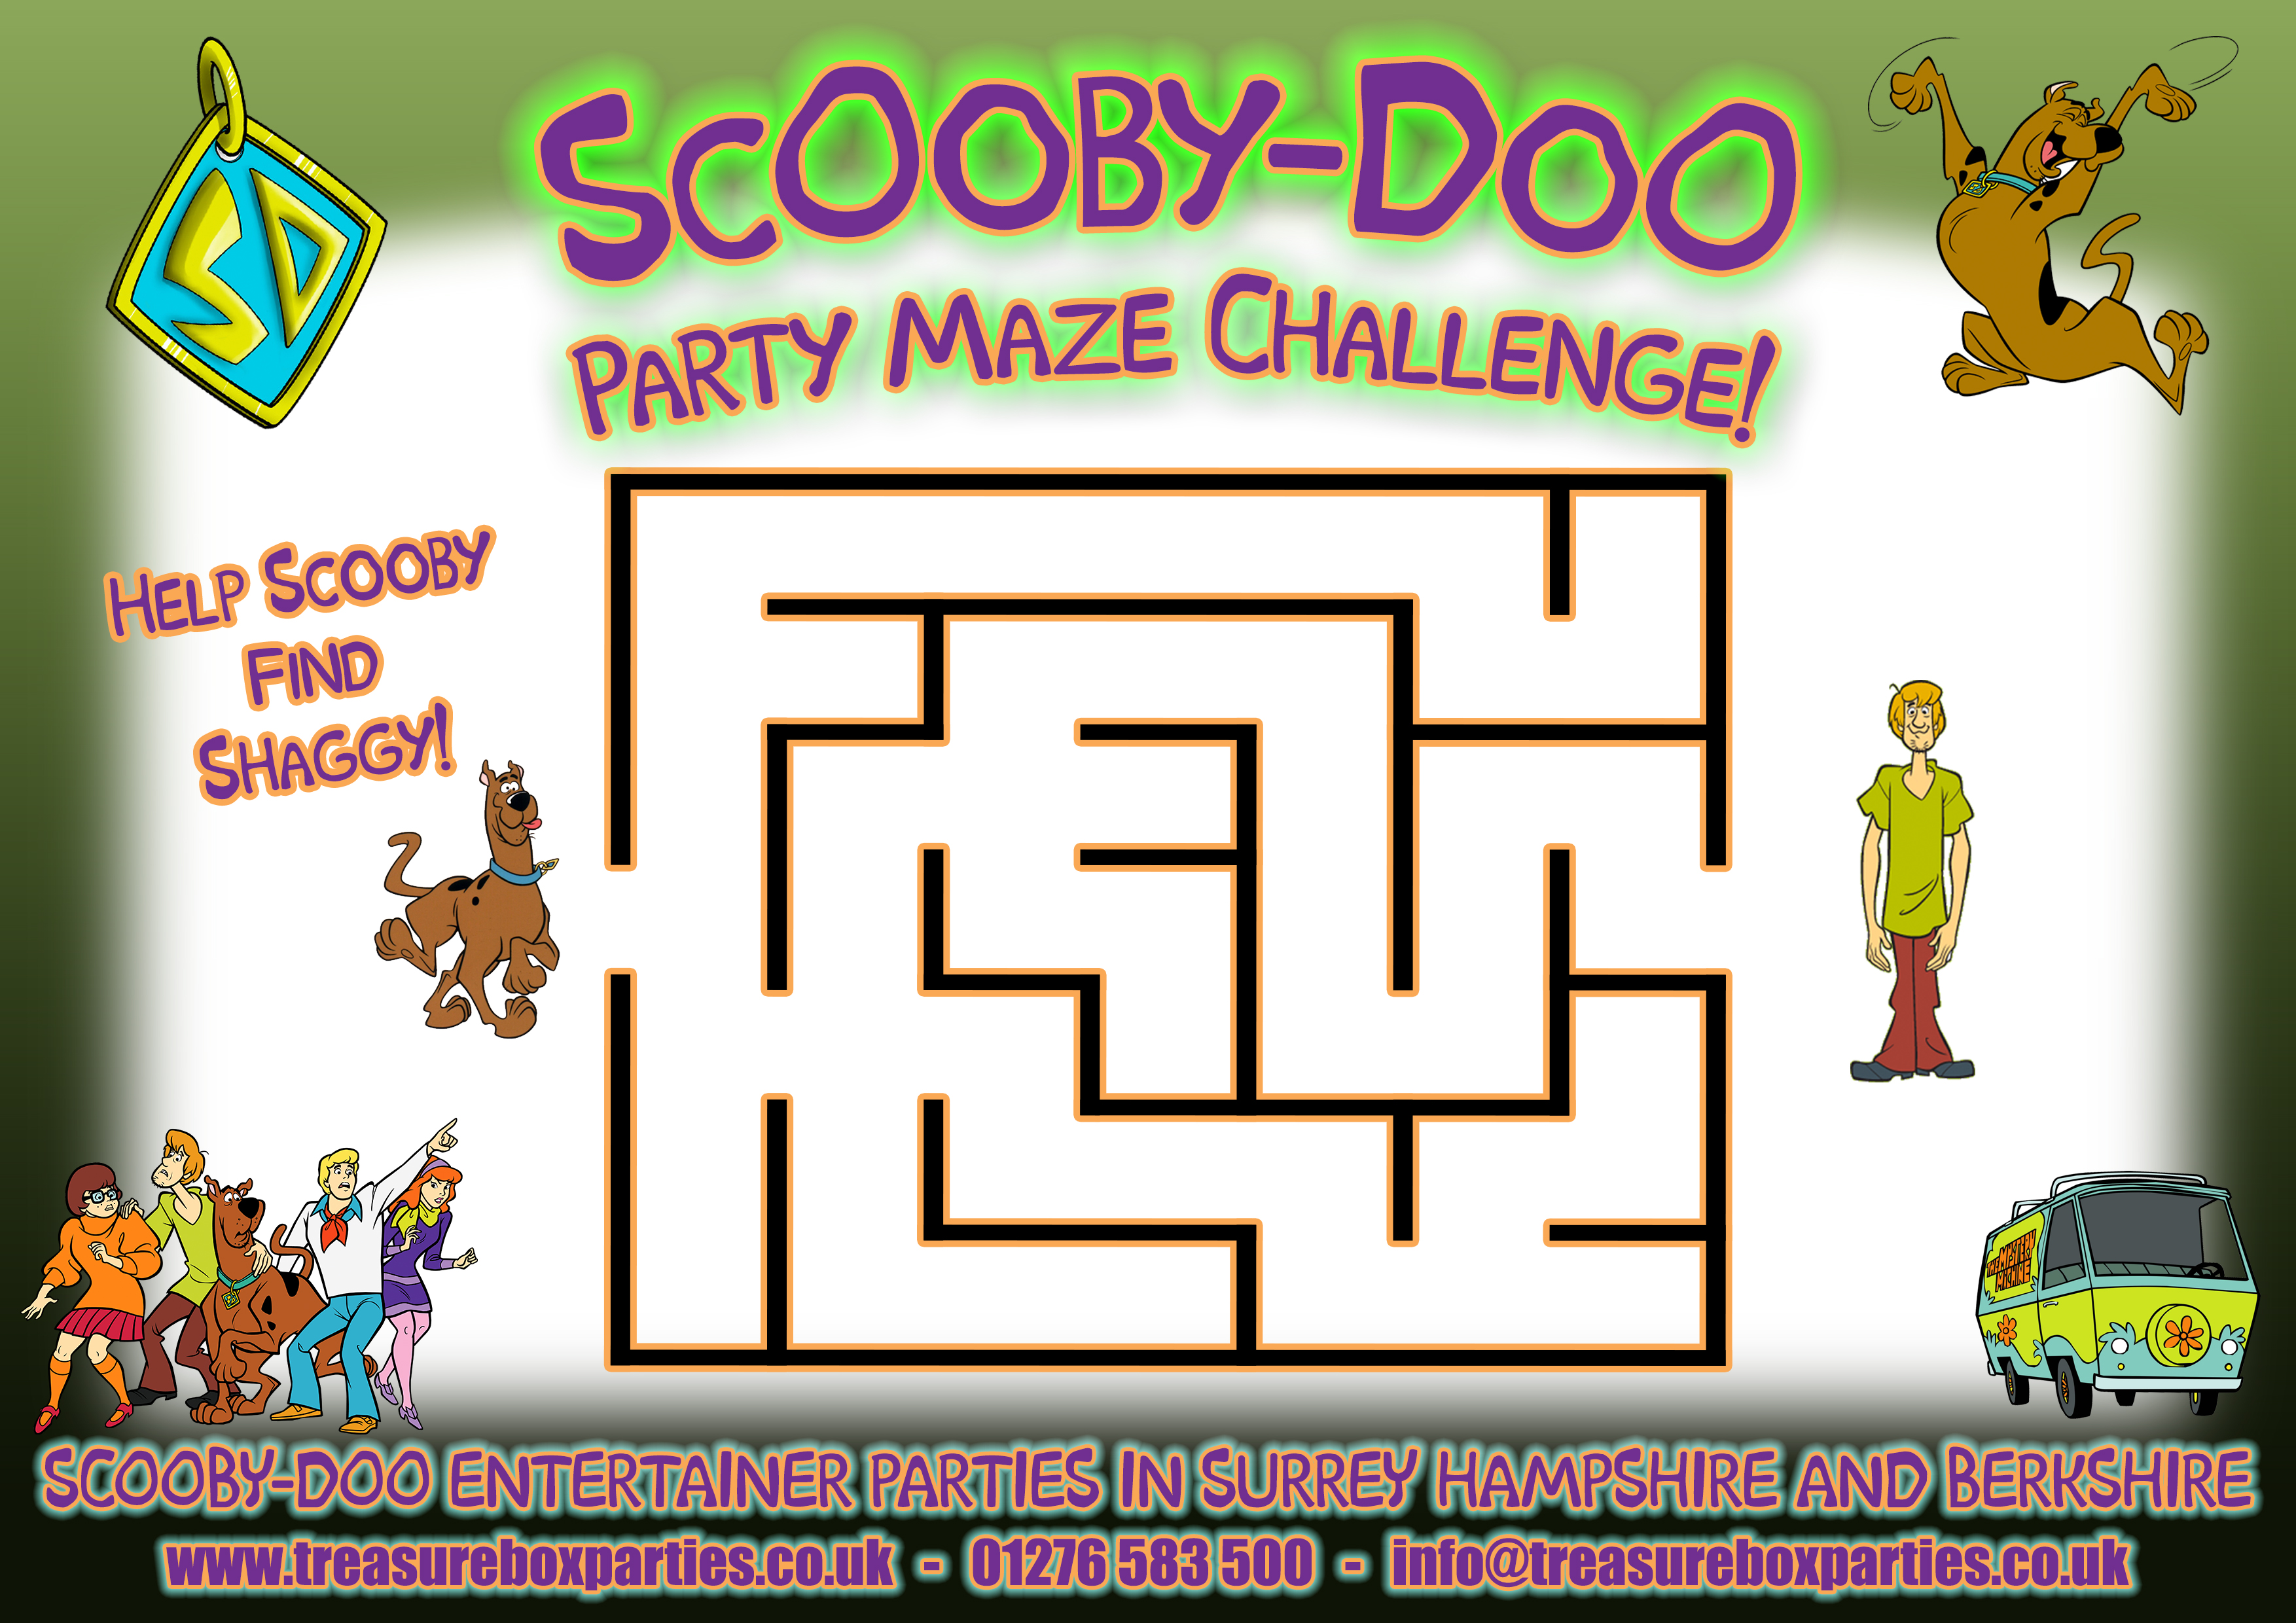 Free Scooby Doo Downloads to Print at Home - Childrens Entertainer ...